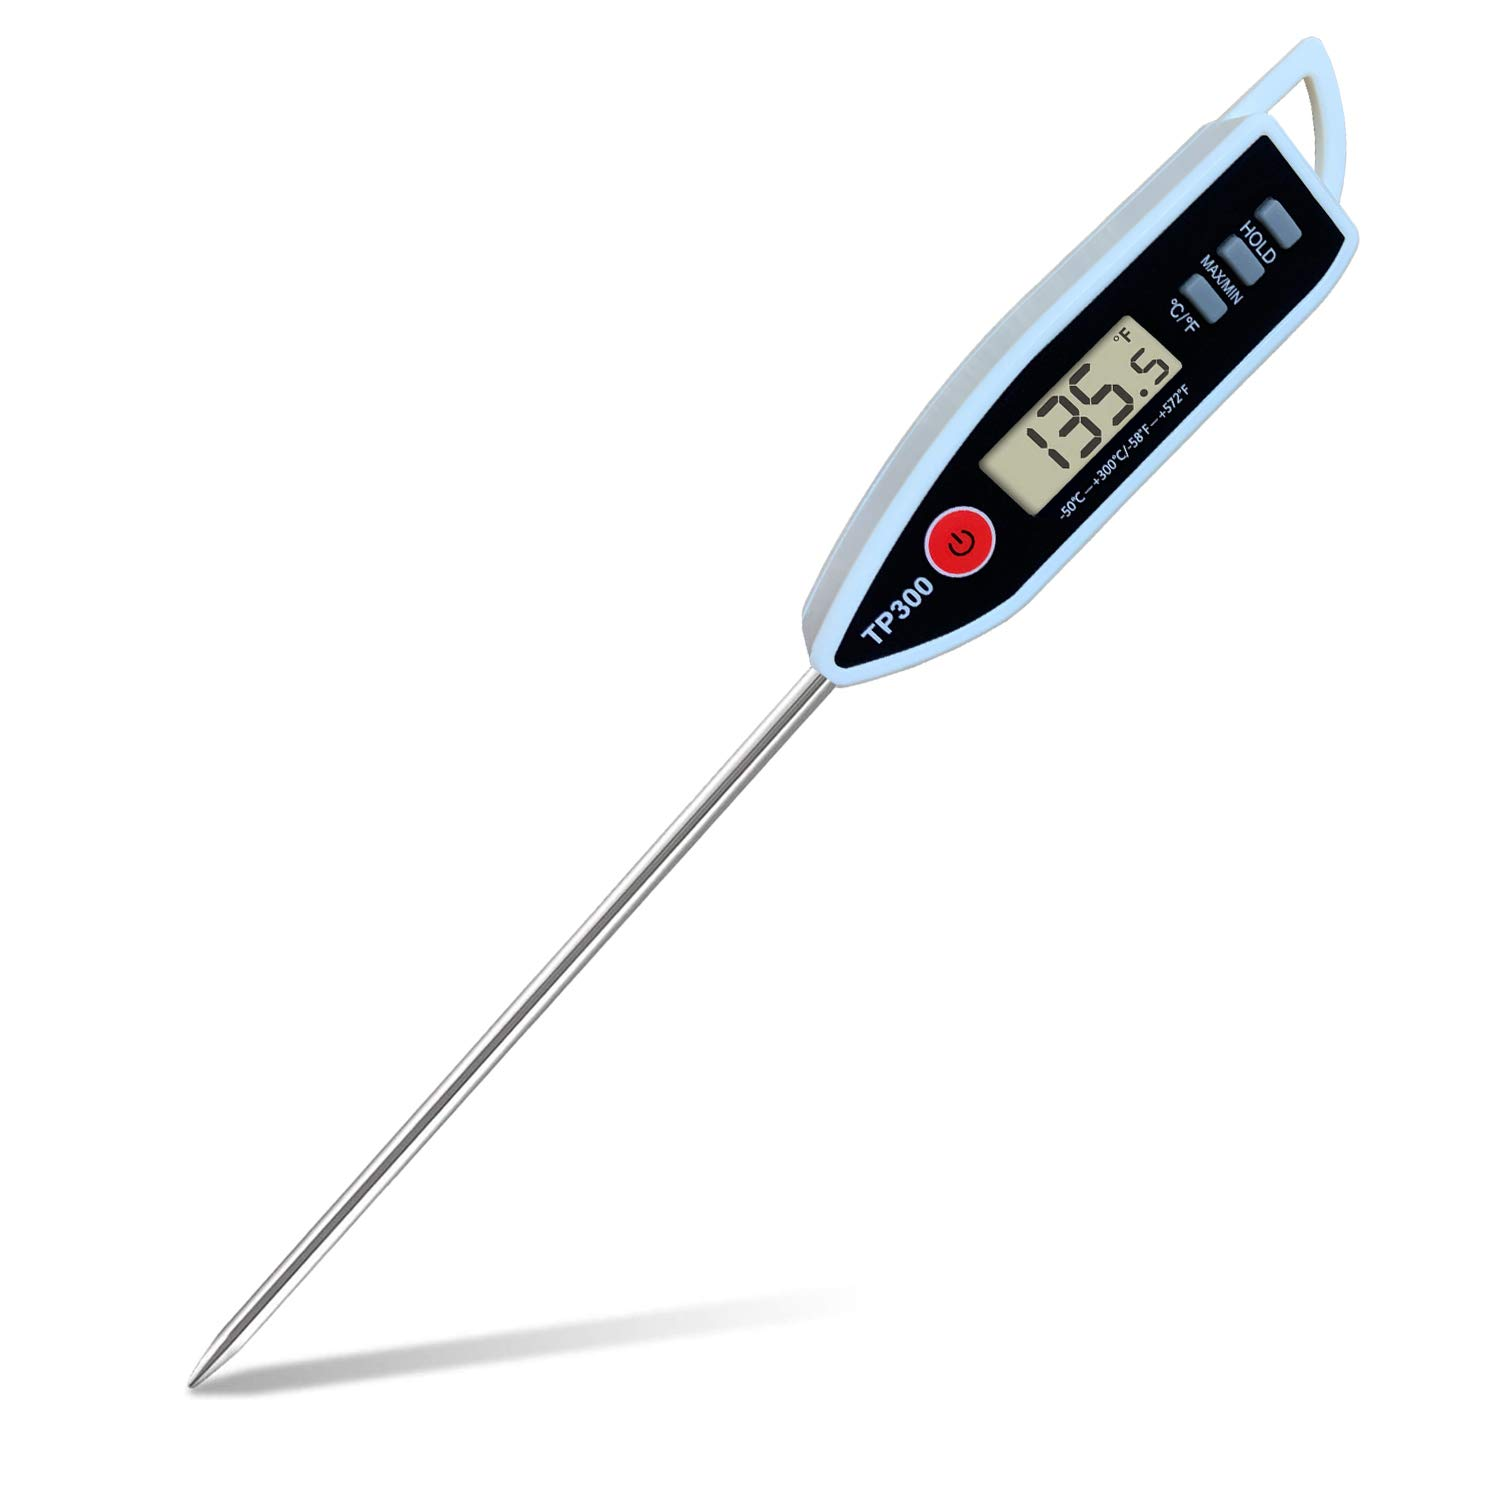 Meat Food Thermometer, Digital Candy Candle Thermometer, Cooking Kitchen BBQ Grill Thermometer, Probe Instant Read Thermometer for Liquids Pork Milk Deep Fry Roast Baking Candle Temperature